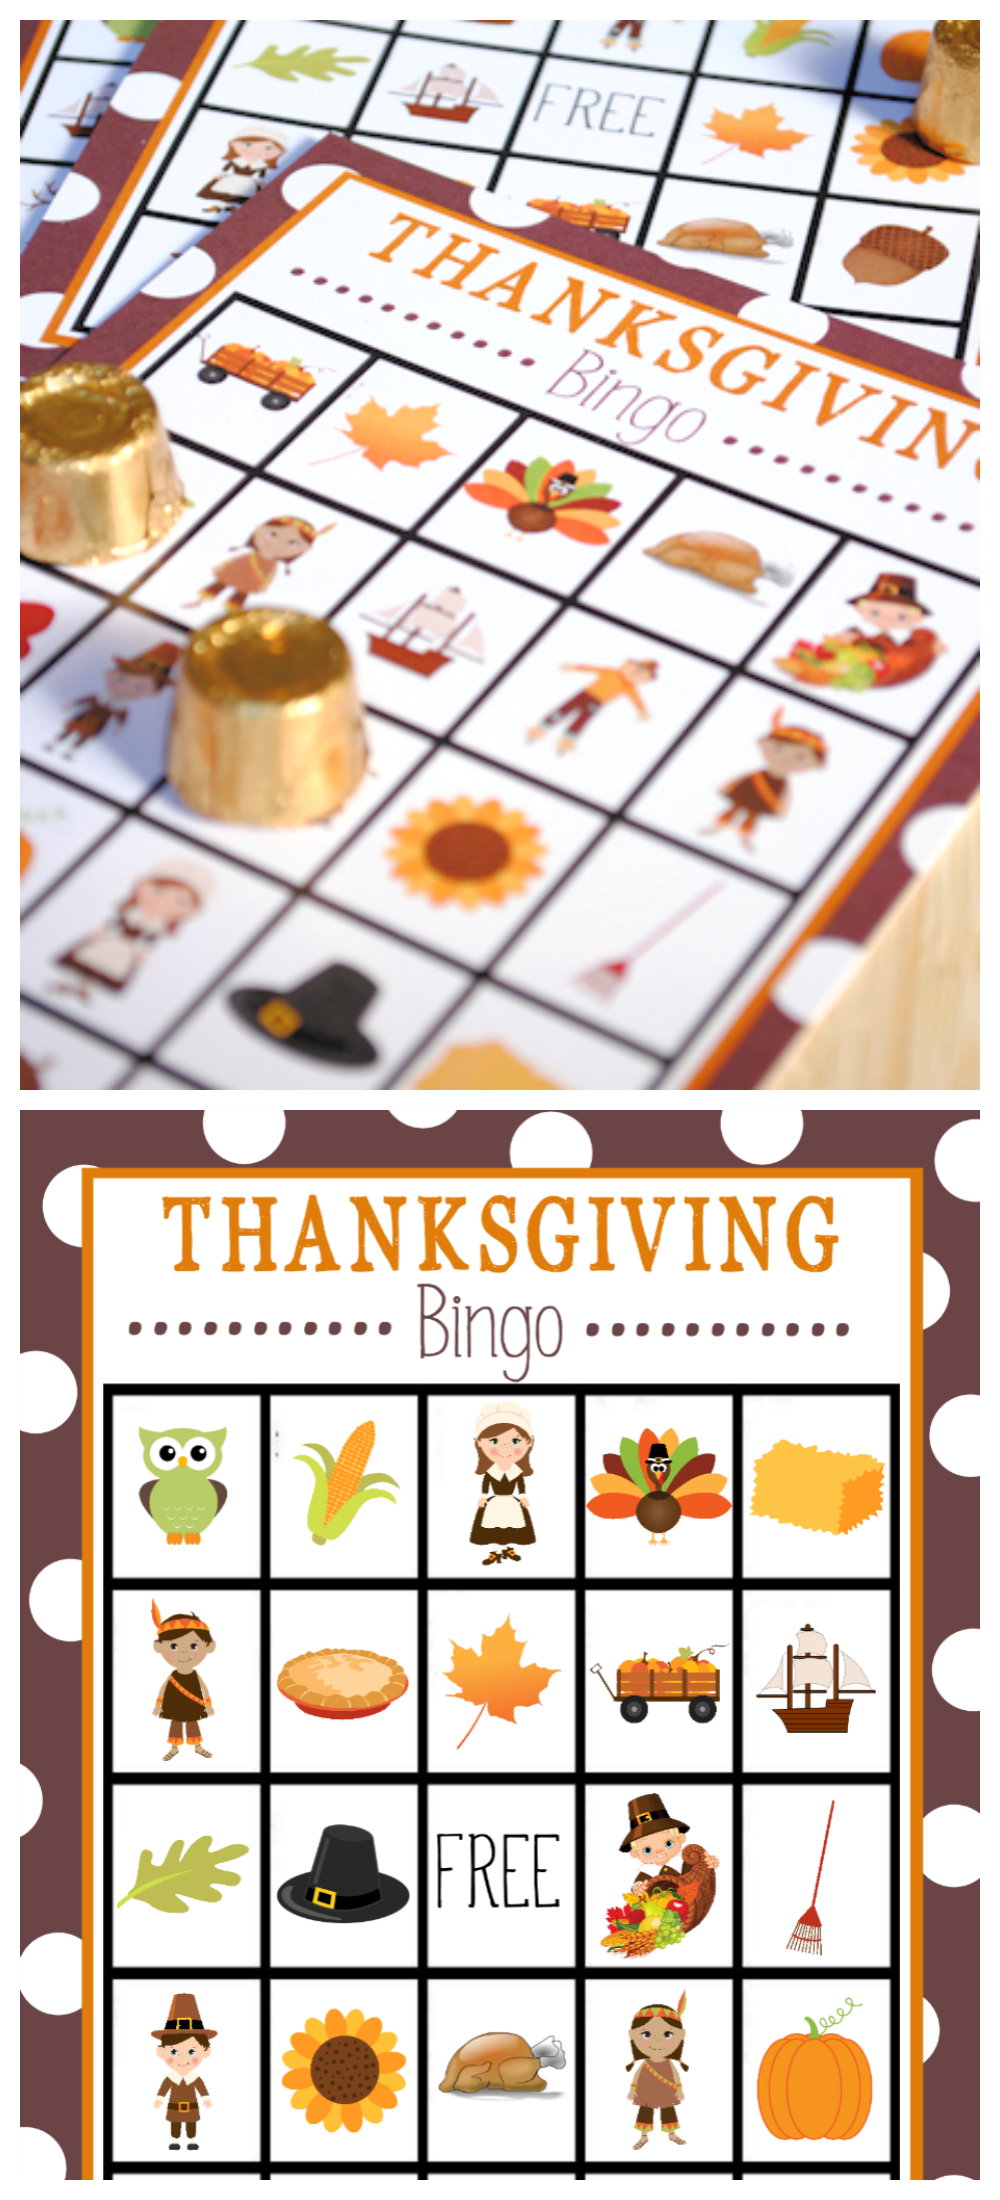 Free Printable Thanksgiving Bingo Game-This is a great game to play while the turkey cooks or for a Thanksgiving party. Just print and play this cute Thanksgiving Bingo game. #Thanksgiving #turkey #bingo